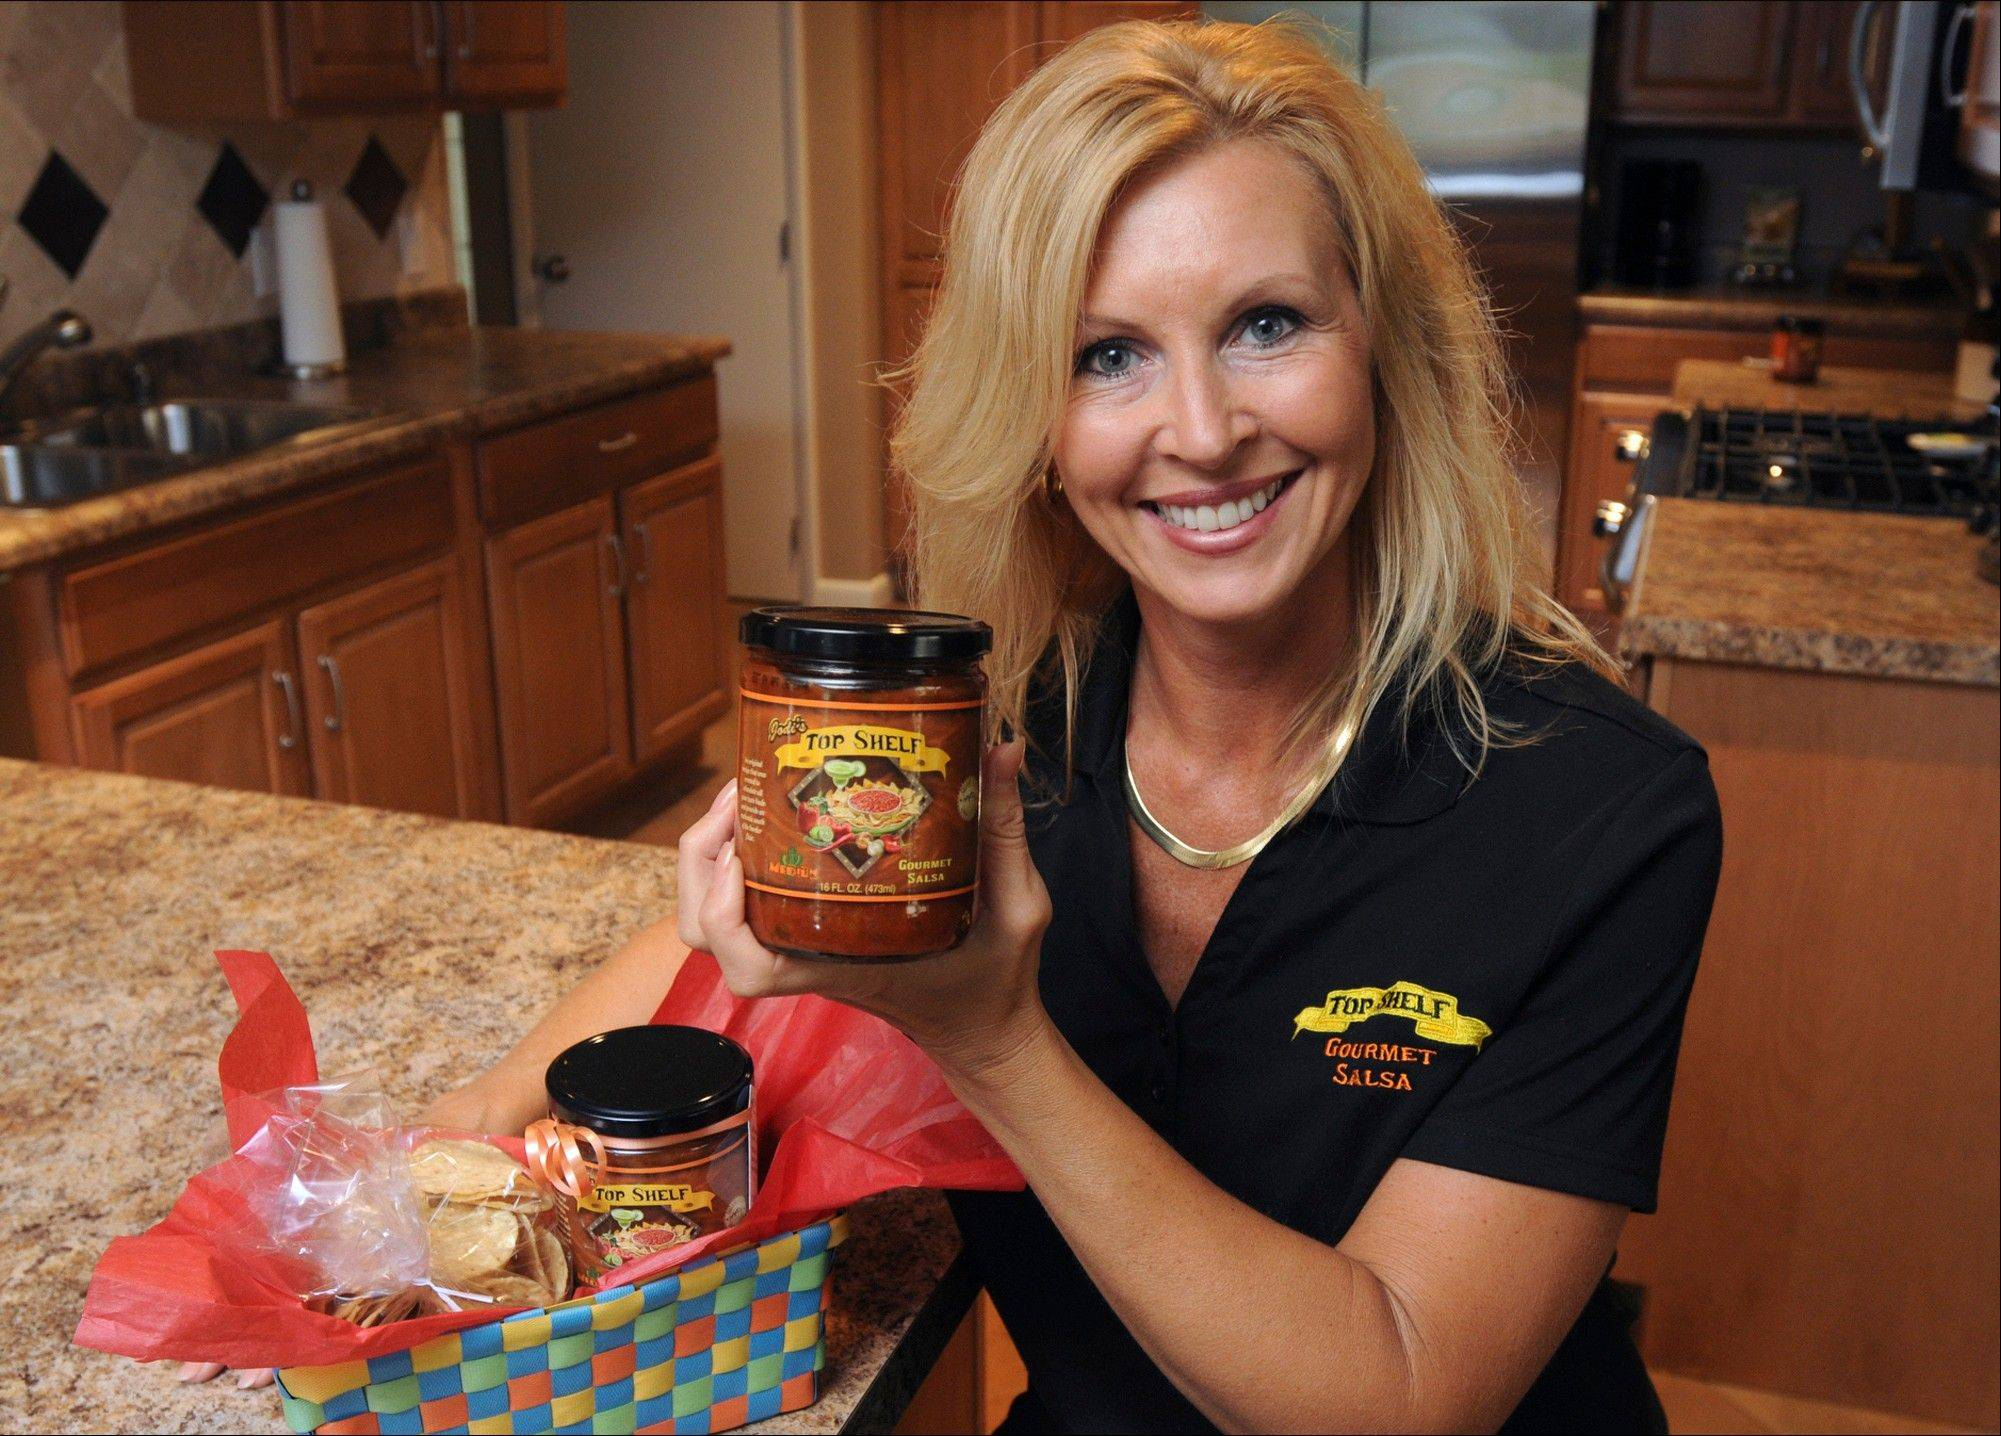 Jodi Haxmeier, of Moline Ill, shows off a jar of Jodi�s Top Shelf Gourmet Salsa. Two Hy-Vee stores started carrying Top Self Salsa in March, and now it�s available at 19 Hy-Vee locations.